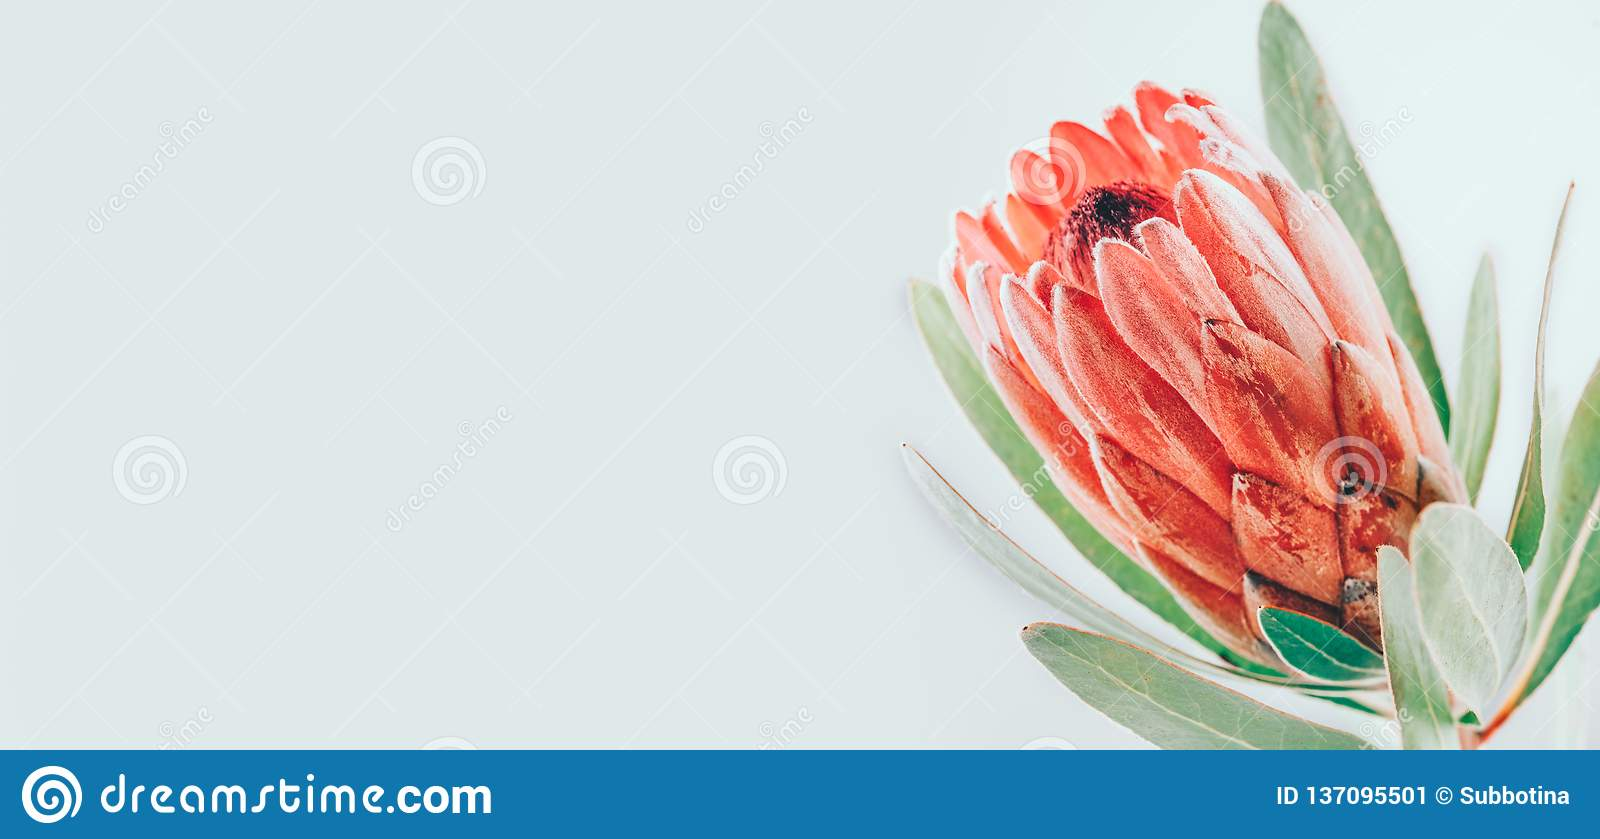 Protea bud closeup. Pink King Protea flower isolated on grey background. Beautiful fashion flower macro shot. Valentine`s Day